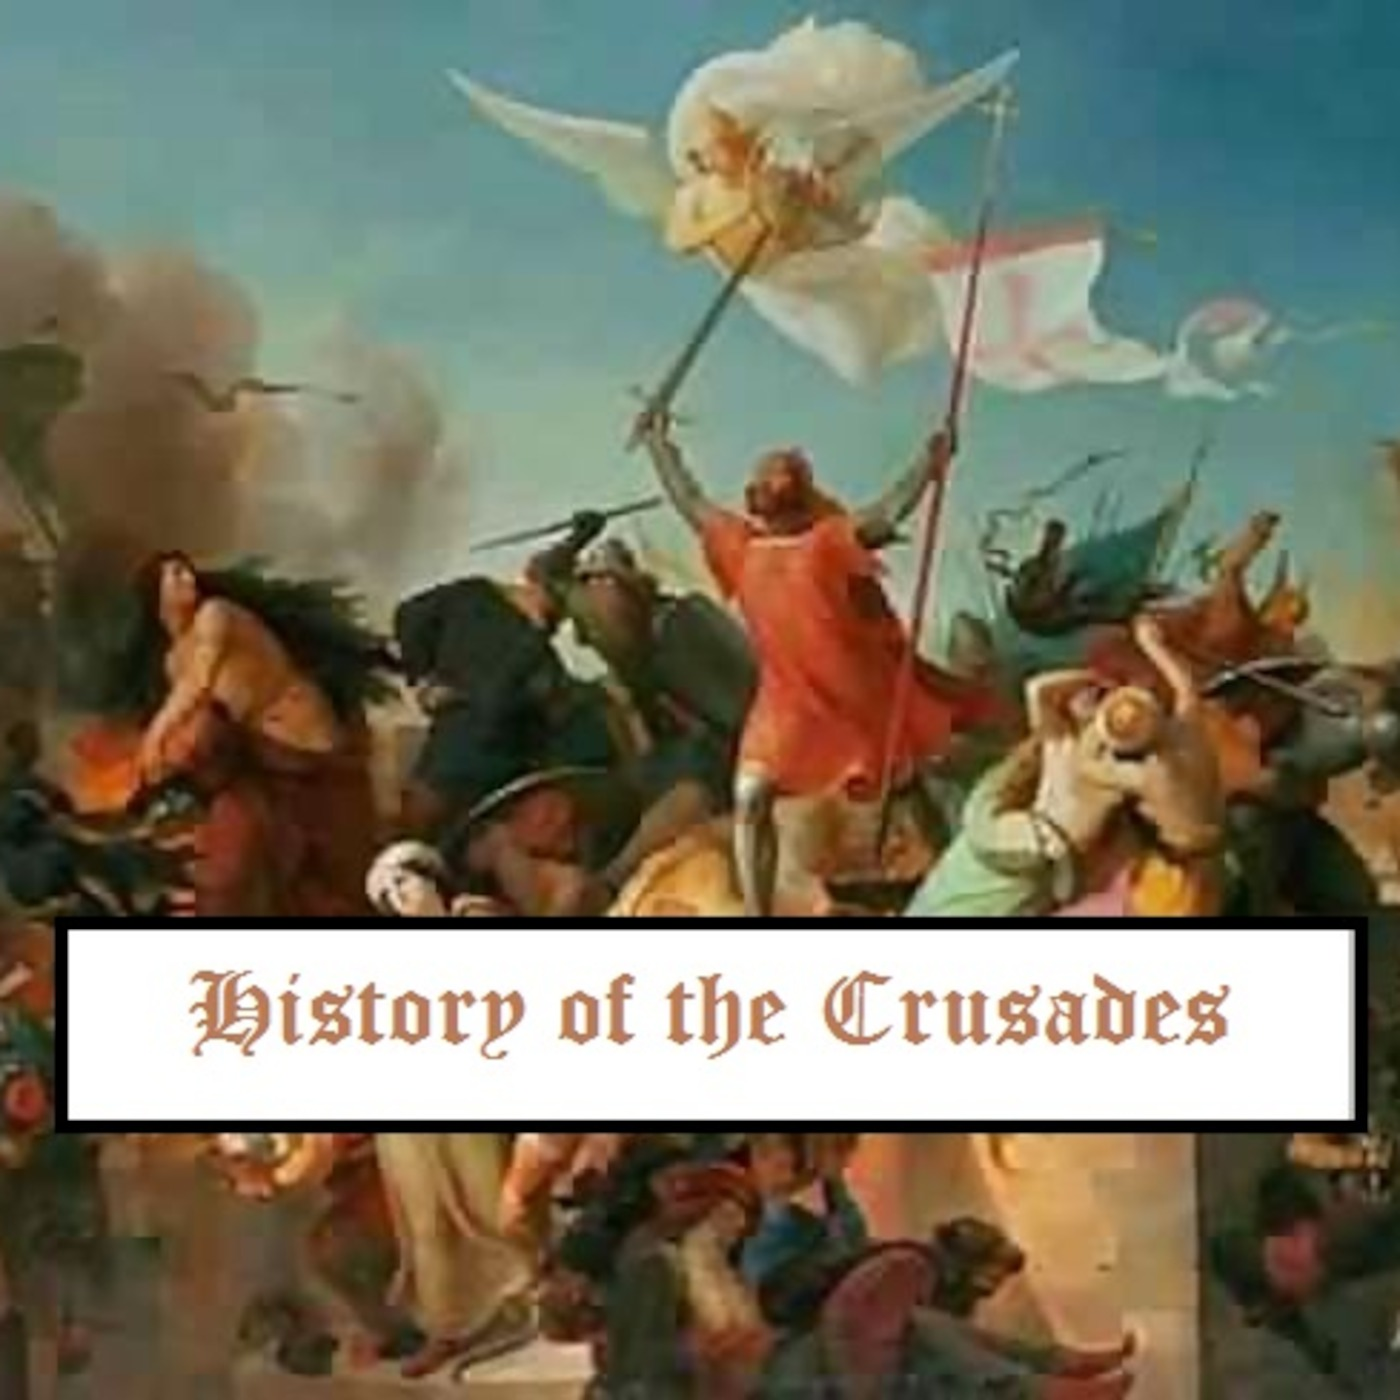 Episode 33(b) - The Second Crusade V continued